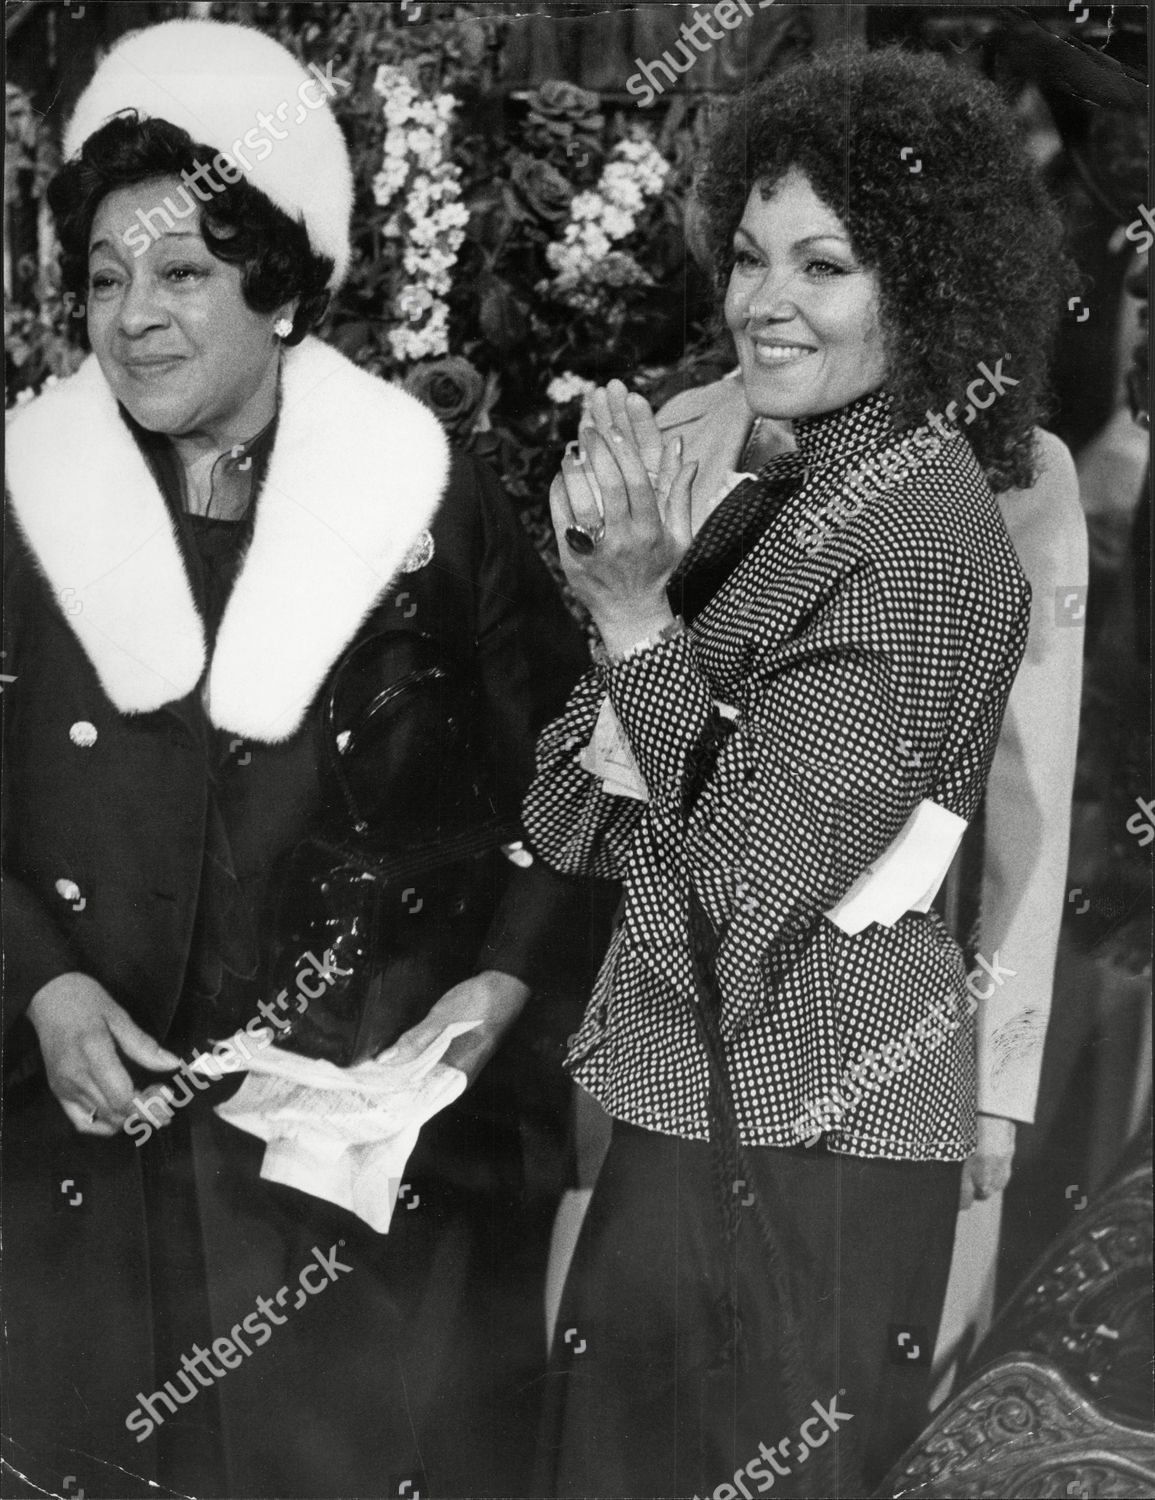 Stock photo of Adelaide Hall And Cleo Laine Attend Memorial Service For Duke Ellington At St Martin-in-the-field London